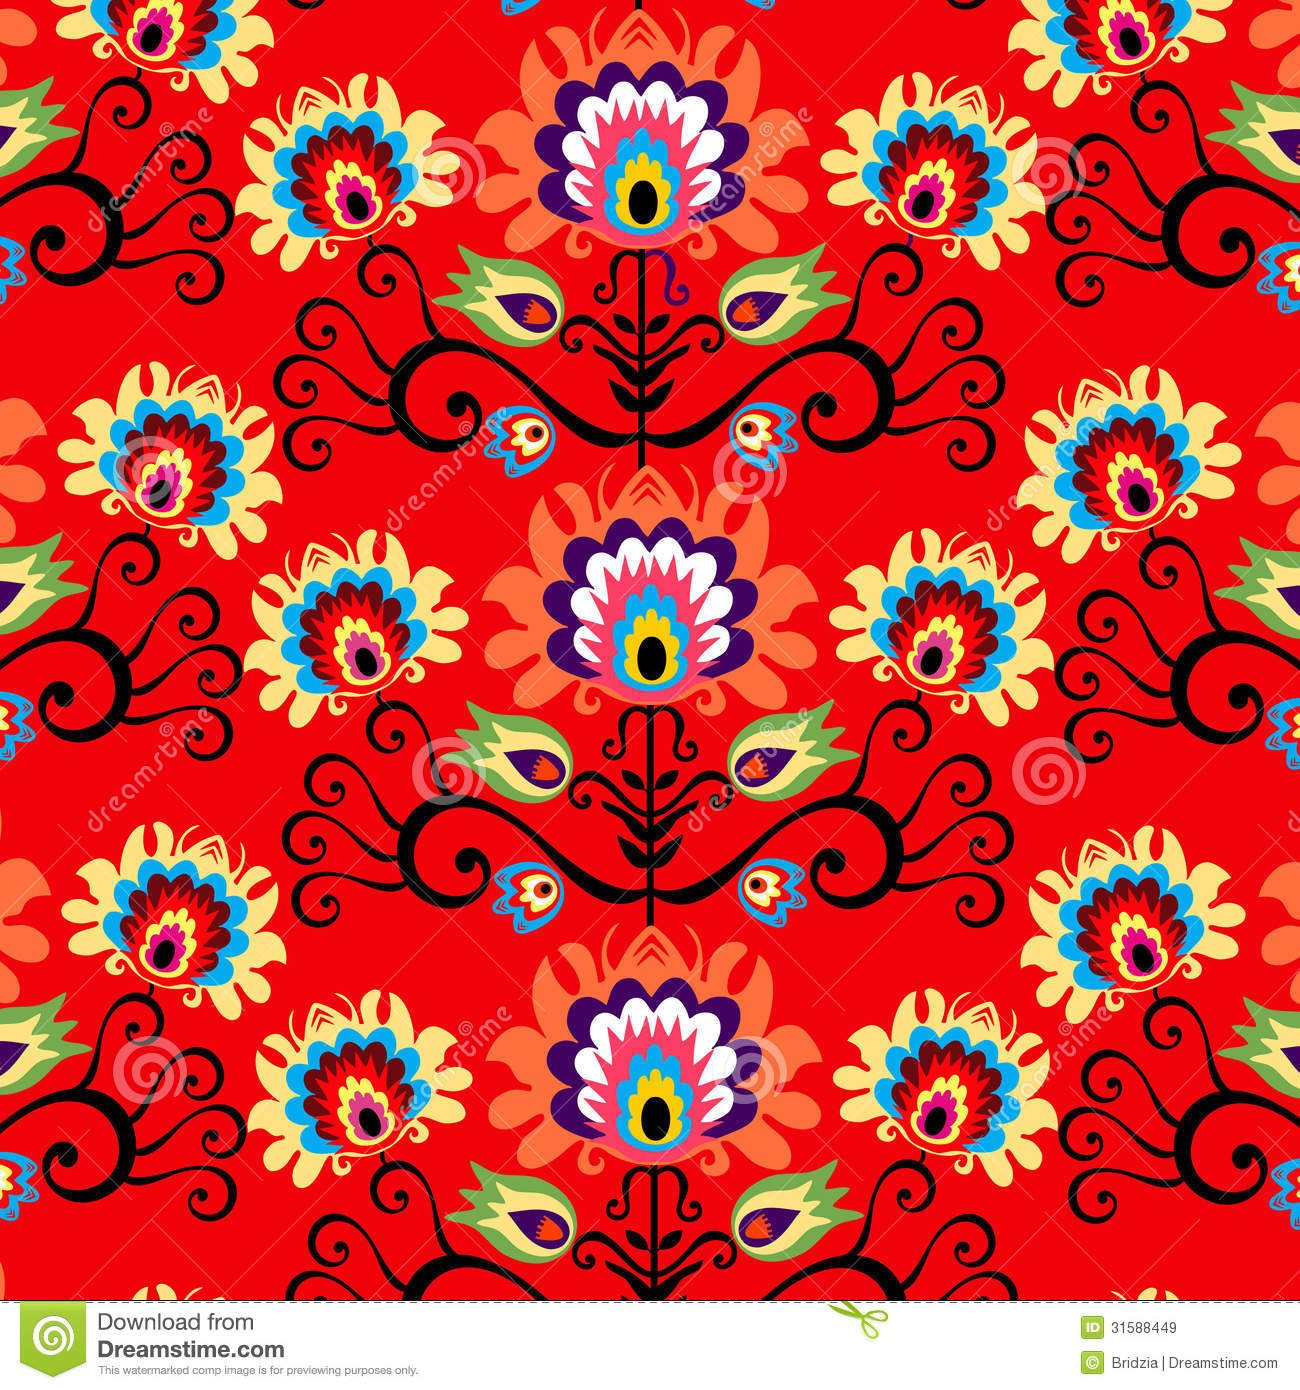 Red Background Royalty Free Stock Images - Image: 31588449: dreamstime.com/royalty-free-stock-images-red-background-polish-folk...